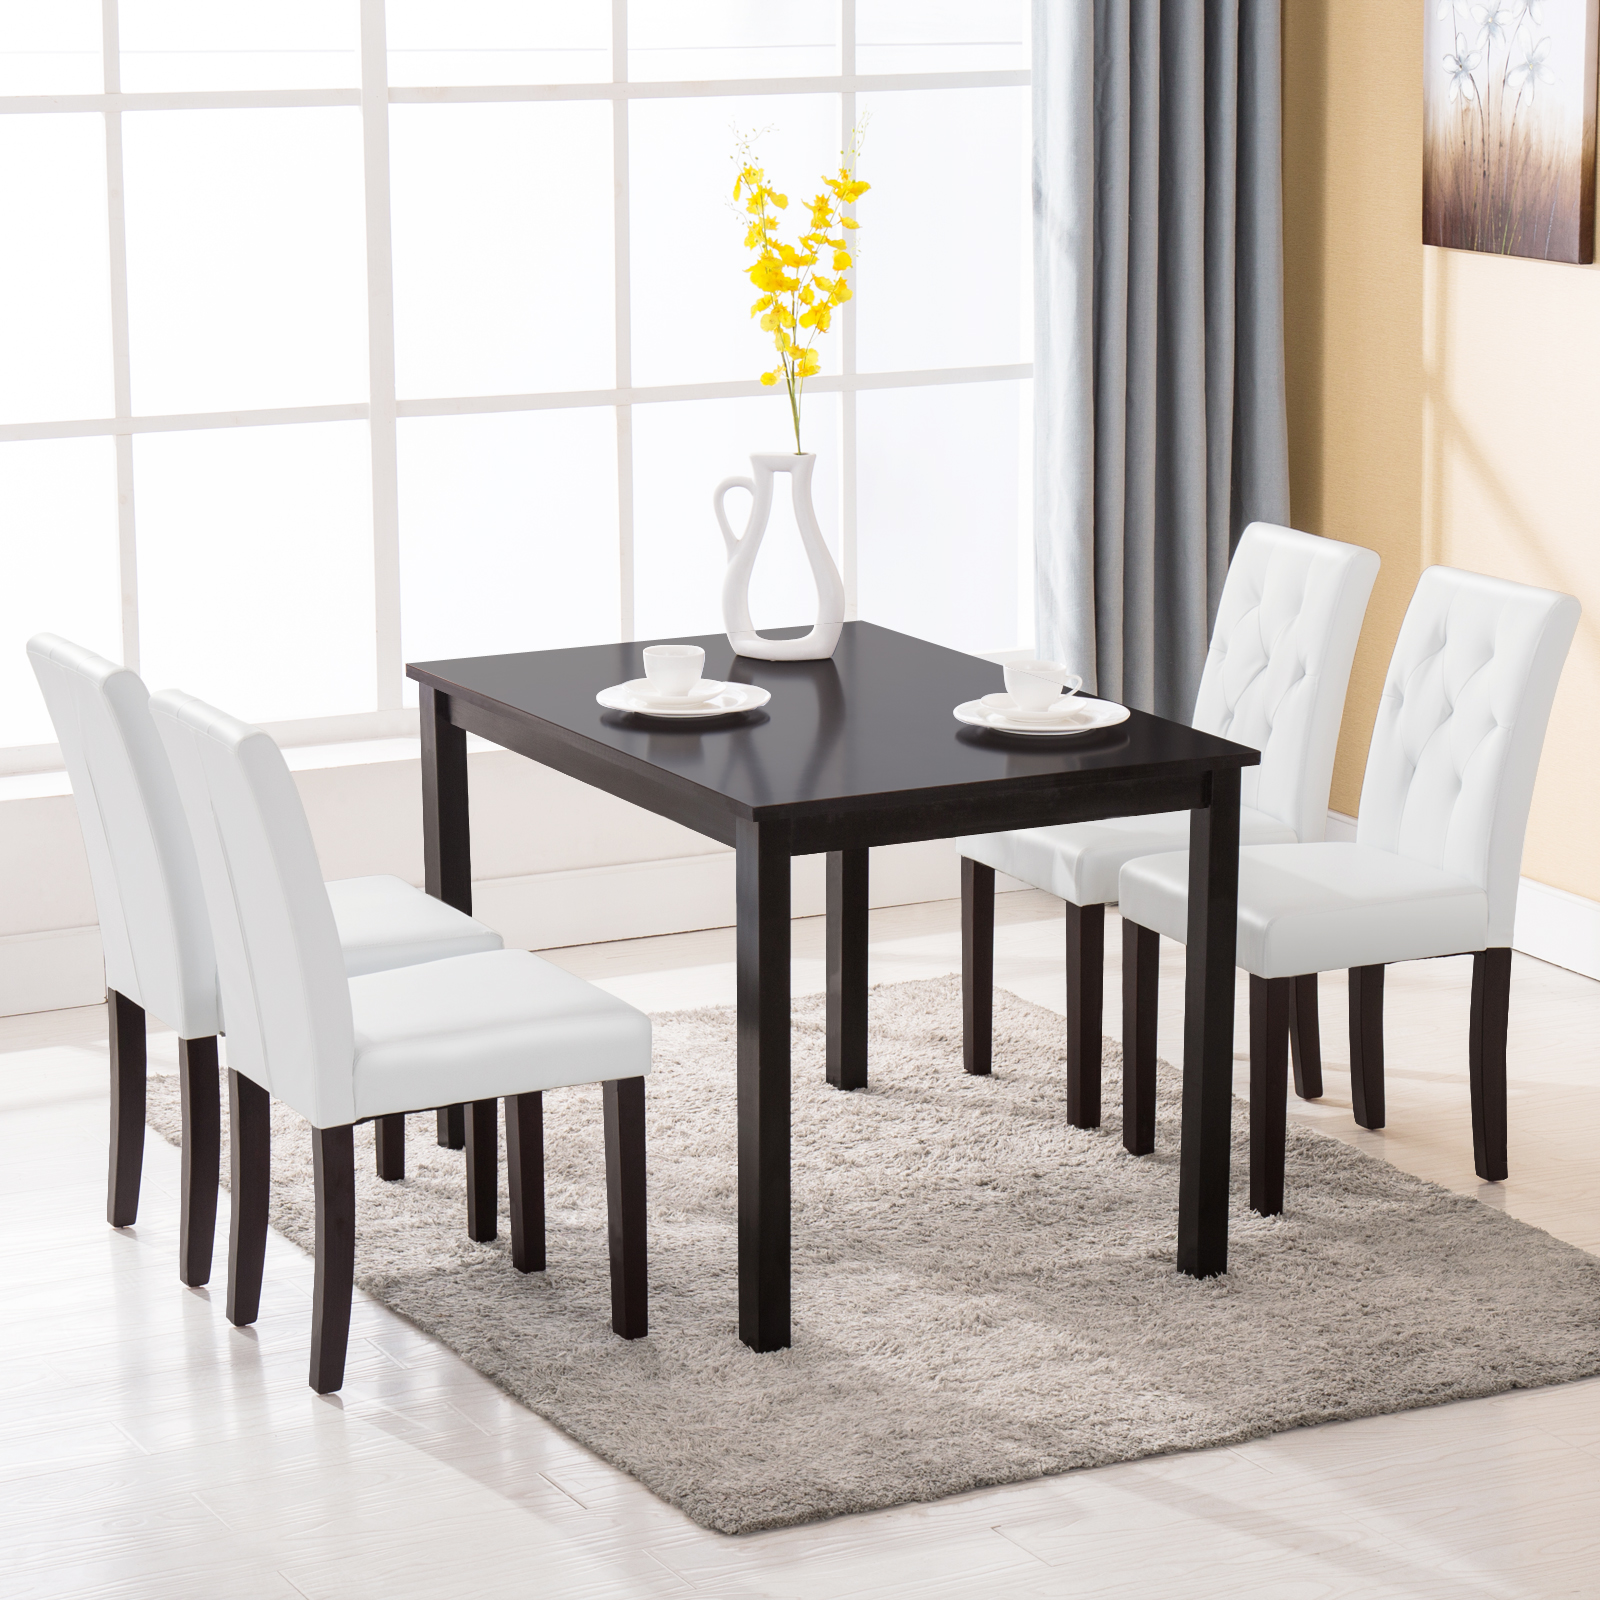 5 piece wood white dining table set 4 chairs room kitchen for 4 dining room chairs ebay